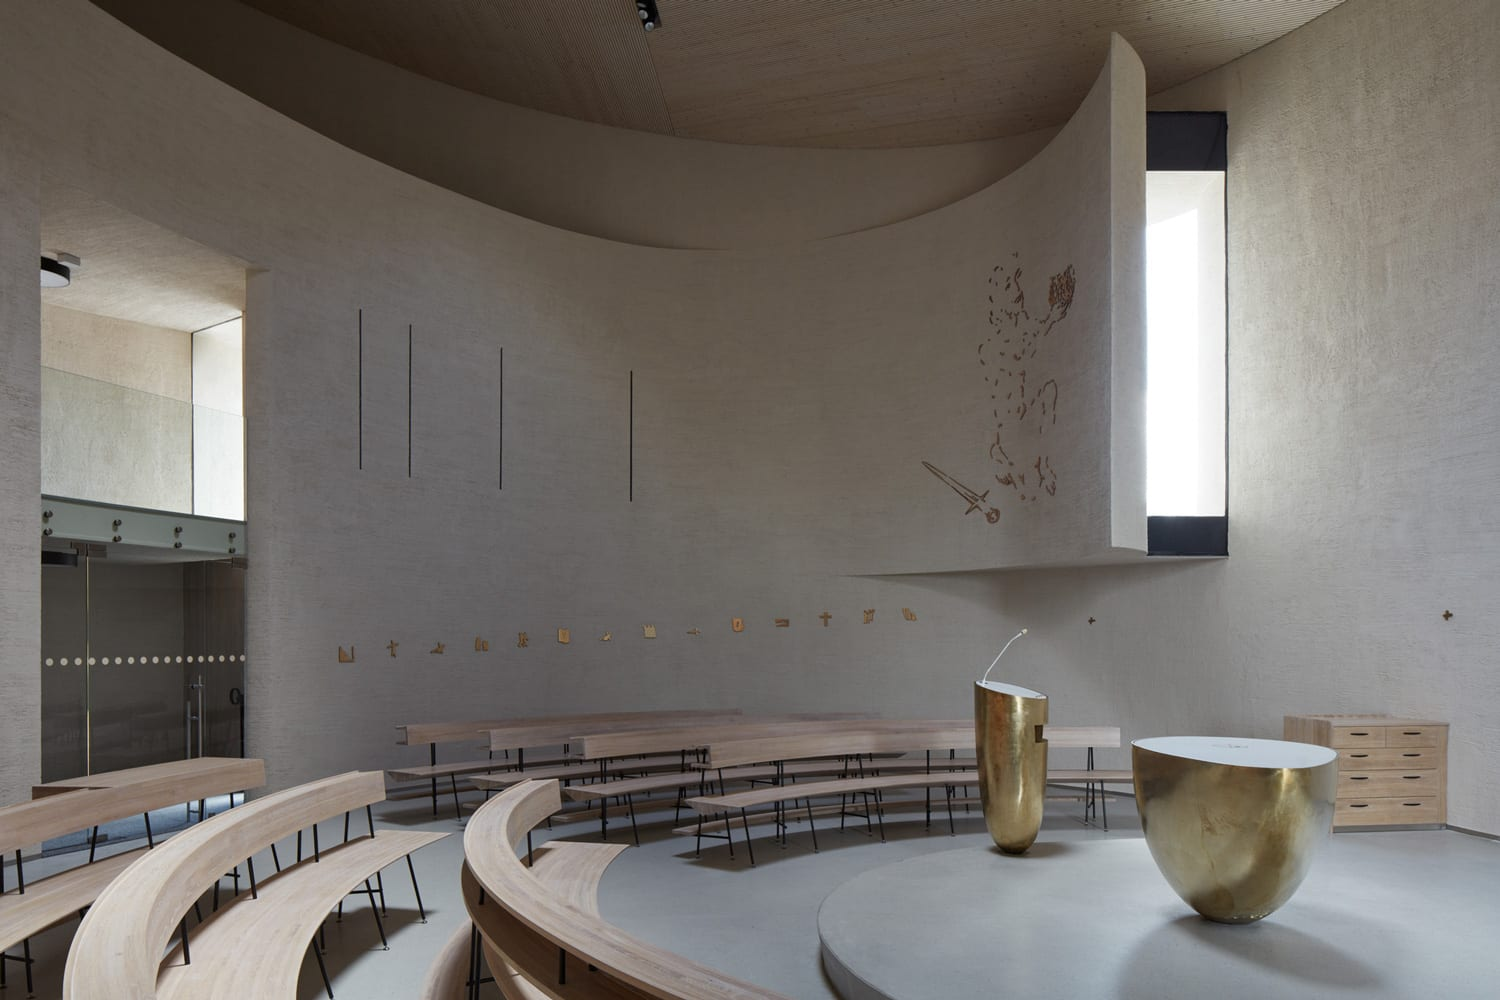 Church of St. Wenceslas in Sazovice, Czech Republic by Atelier Stepan | Yellowtrace